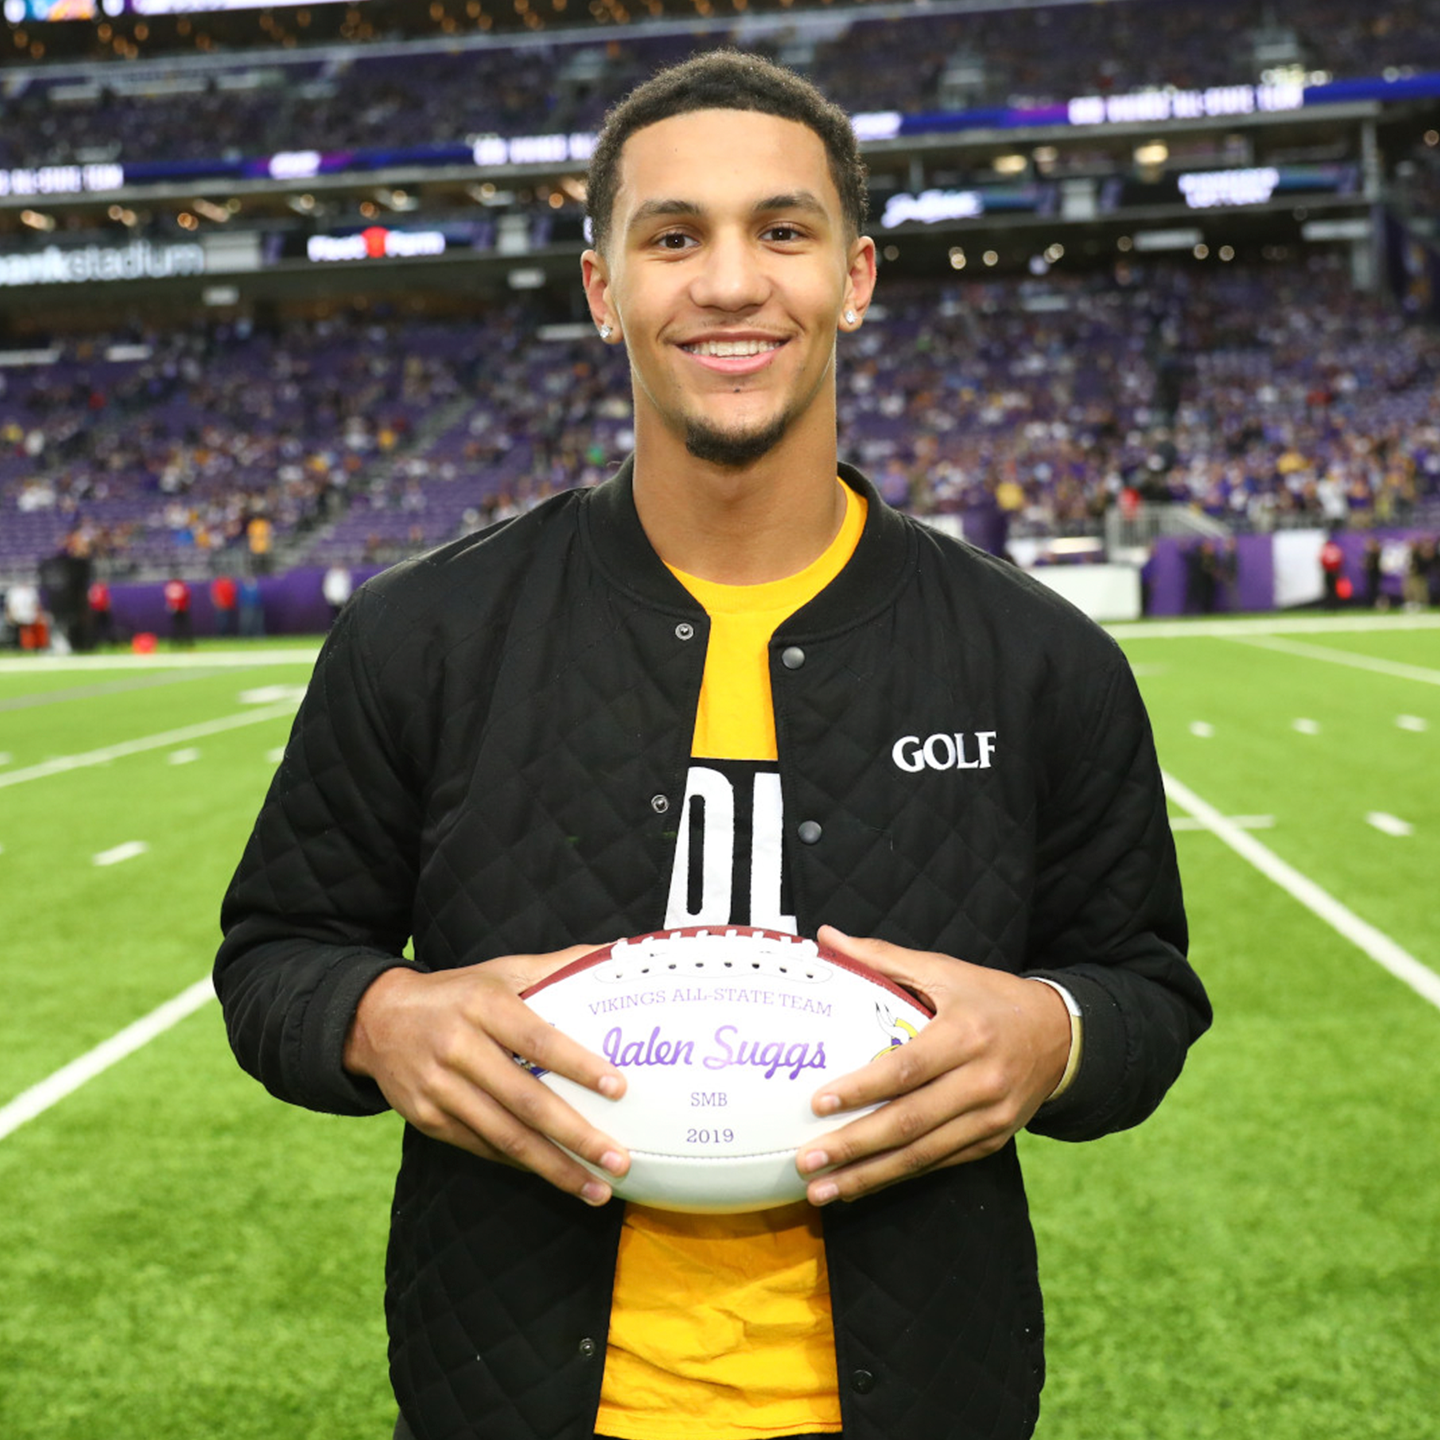 2019 Mr. Football - Jalen Suggs, SMB Wolfpack